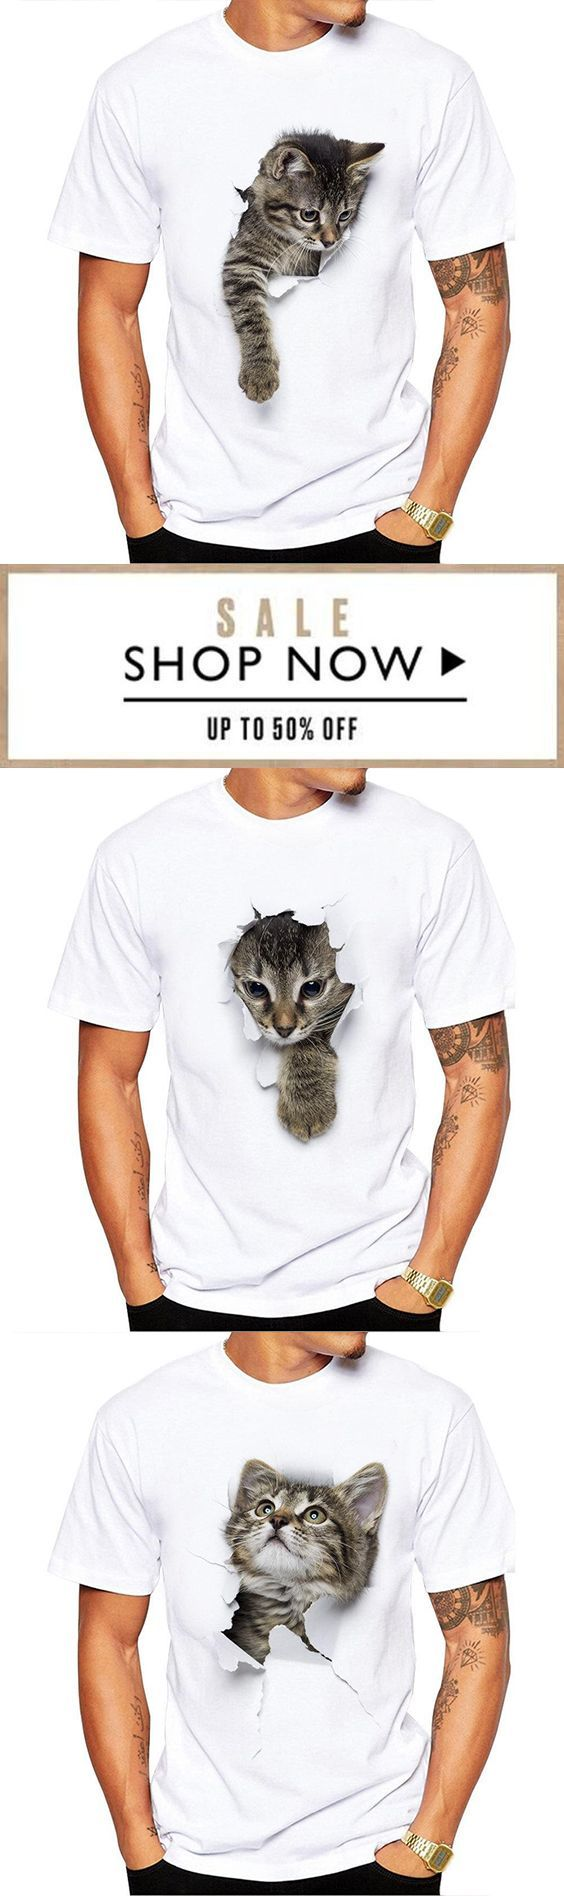 Mens Short Sleeve 3D Cat Printed Casual White T-Shirts – Mode für Männer